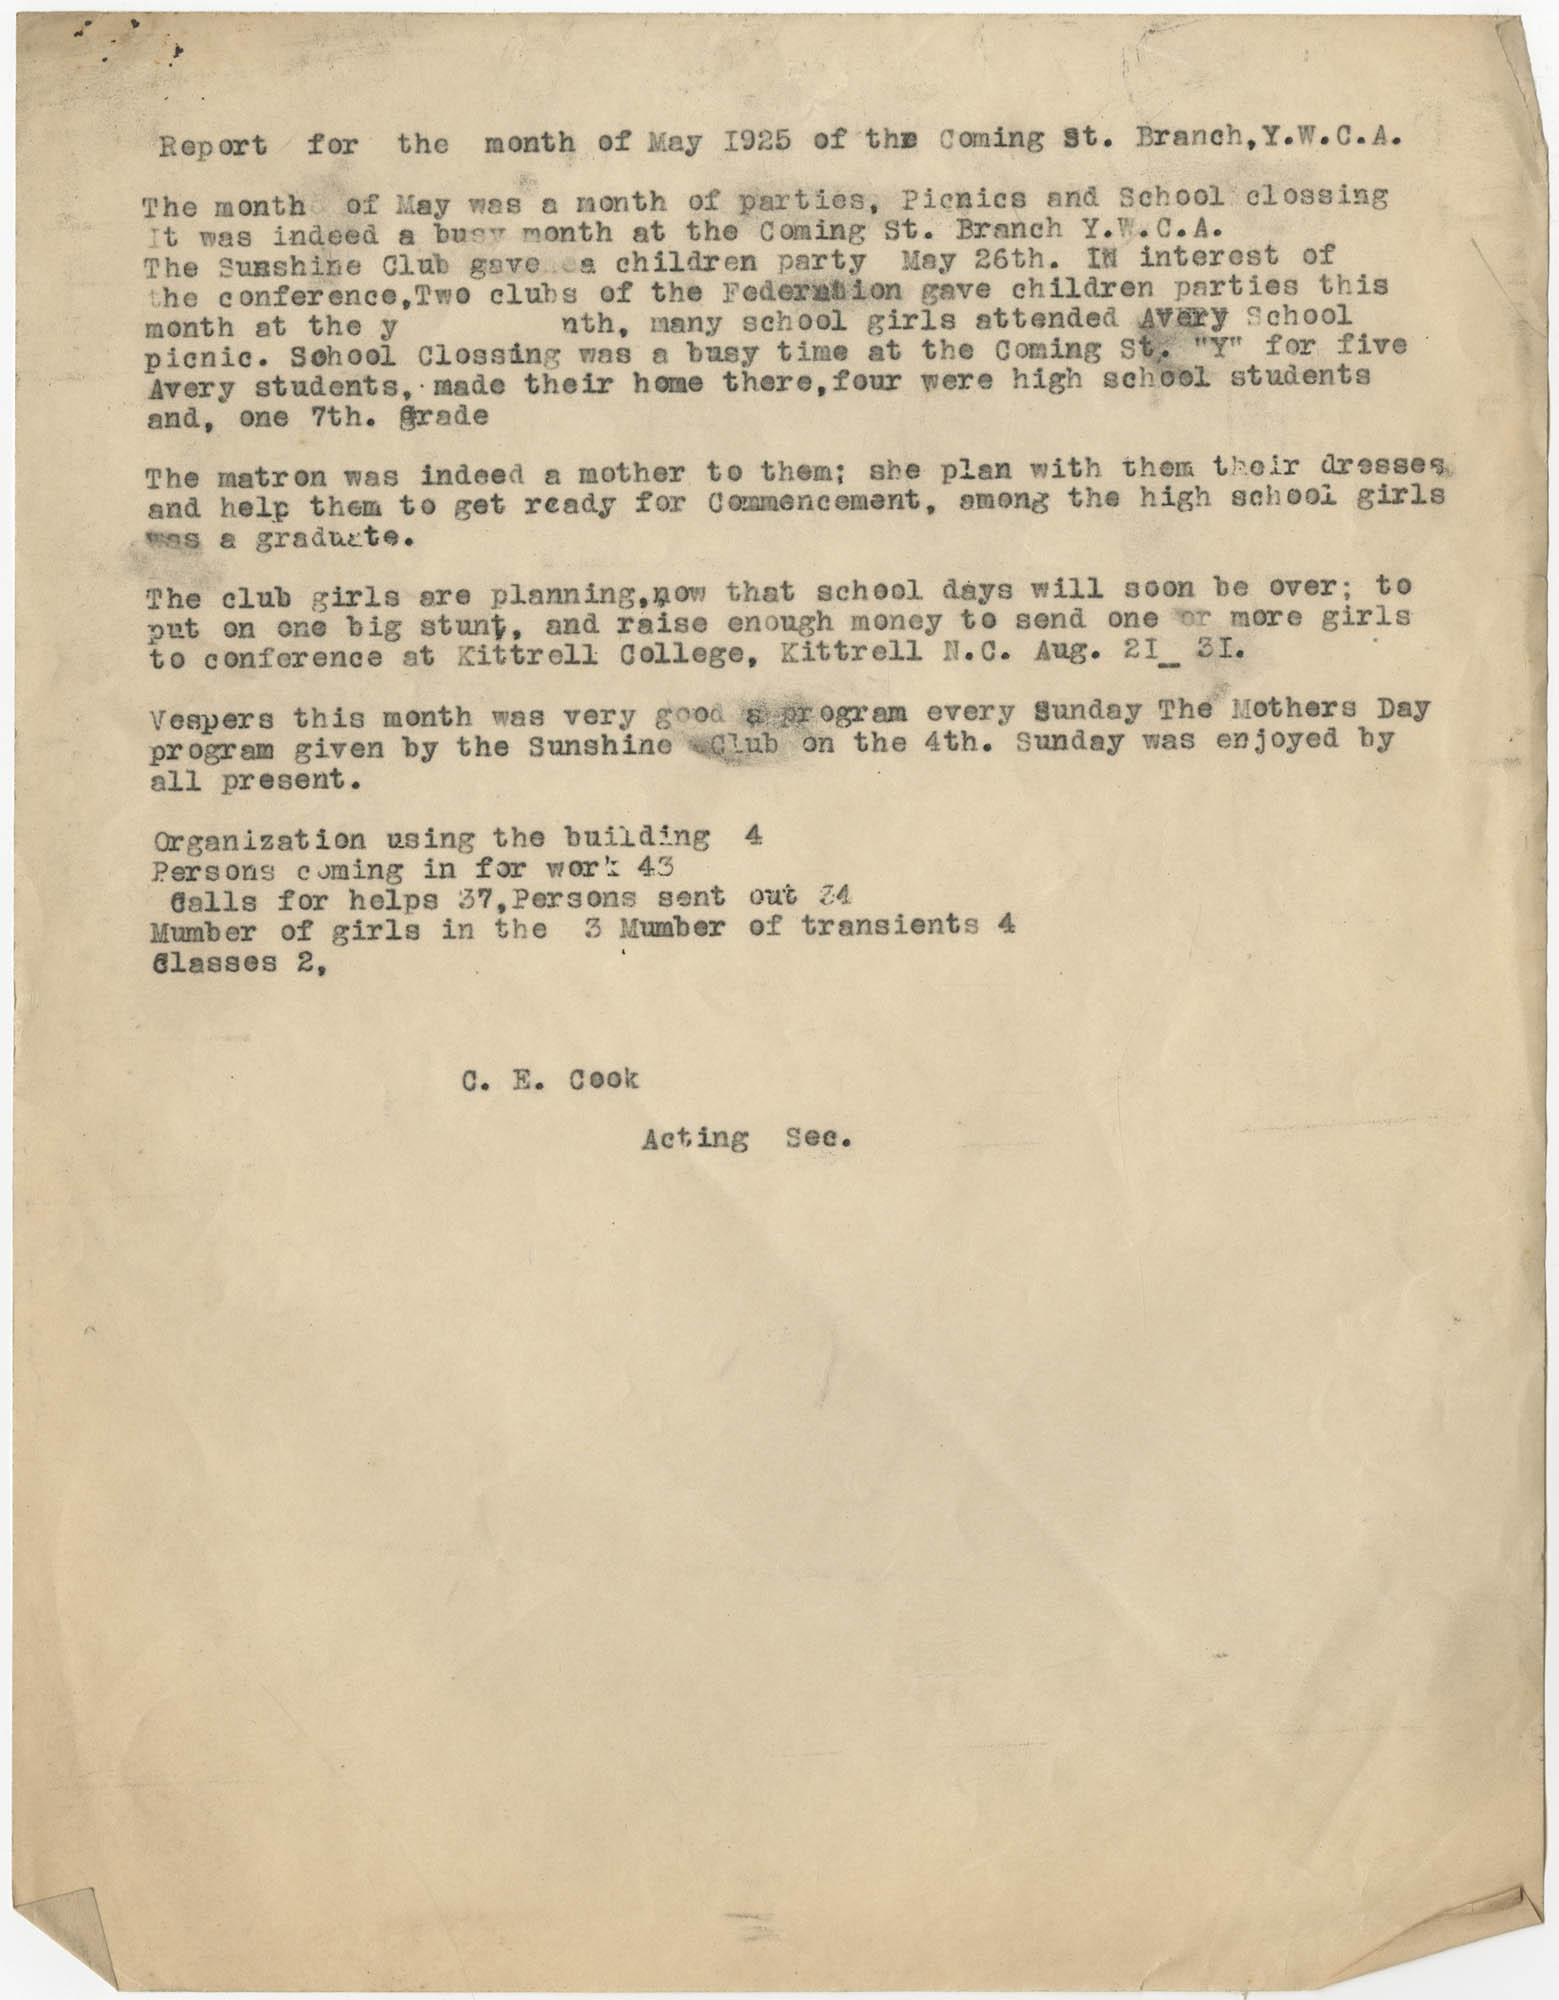 Monthly Report for the Coming Street Y.W.C.A., May 1925